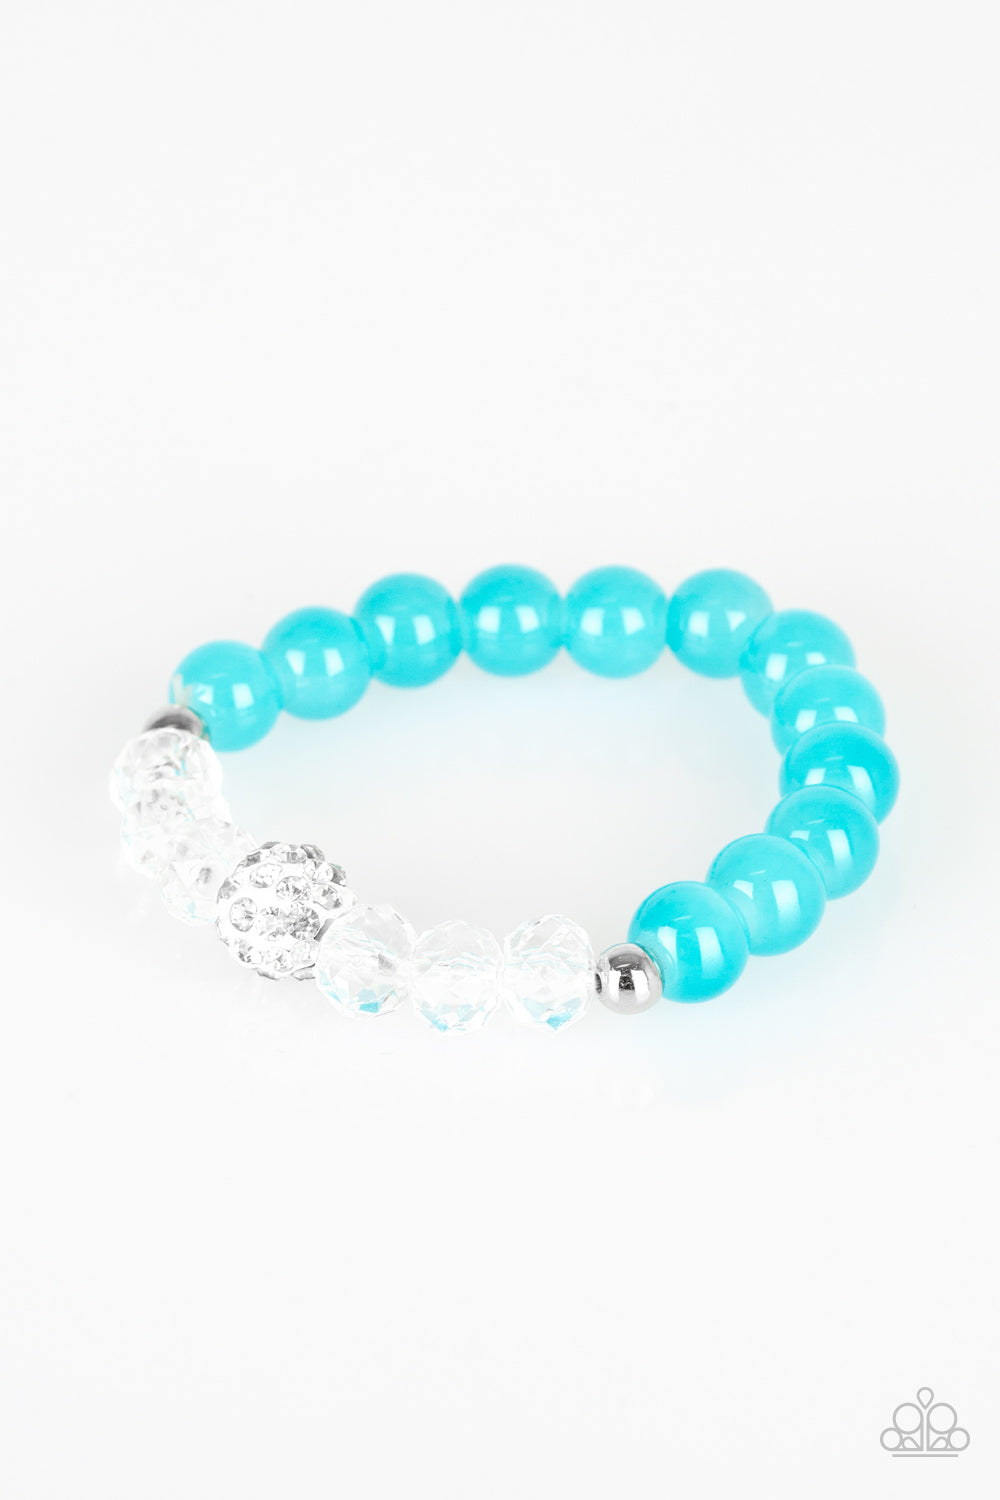 Paparazzi Accessories - Starlet Shimmer - Colorpop Bead Bracelet - JMJ Jewelry Collection